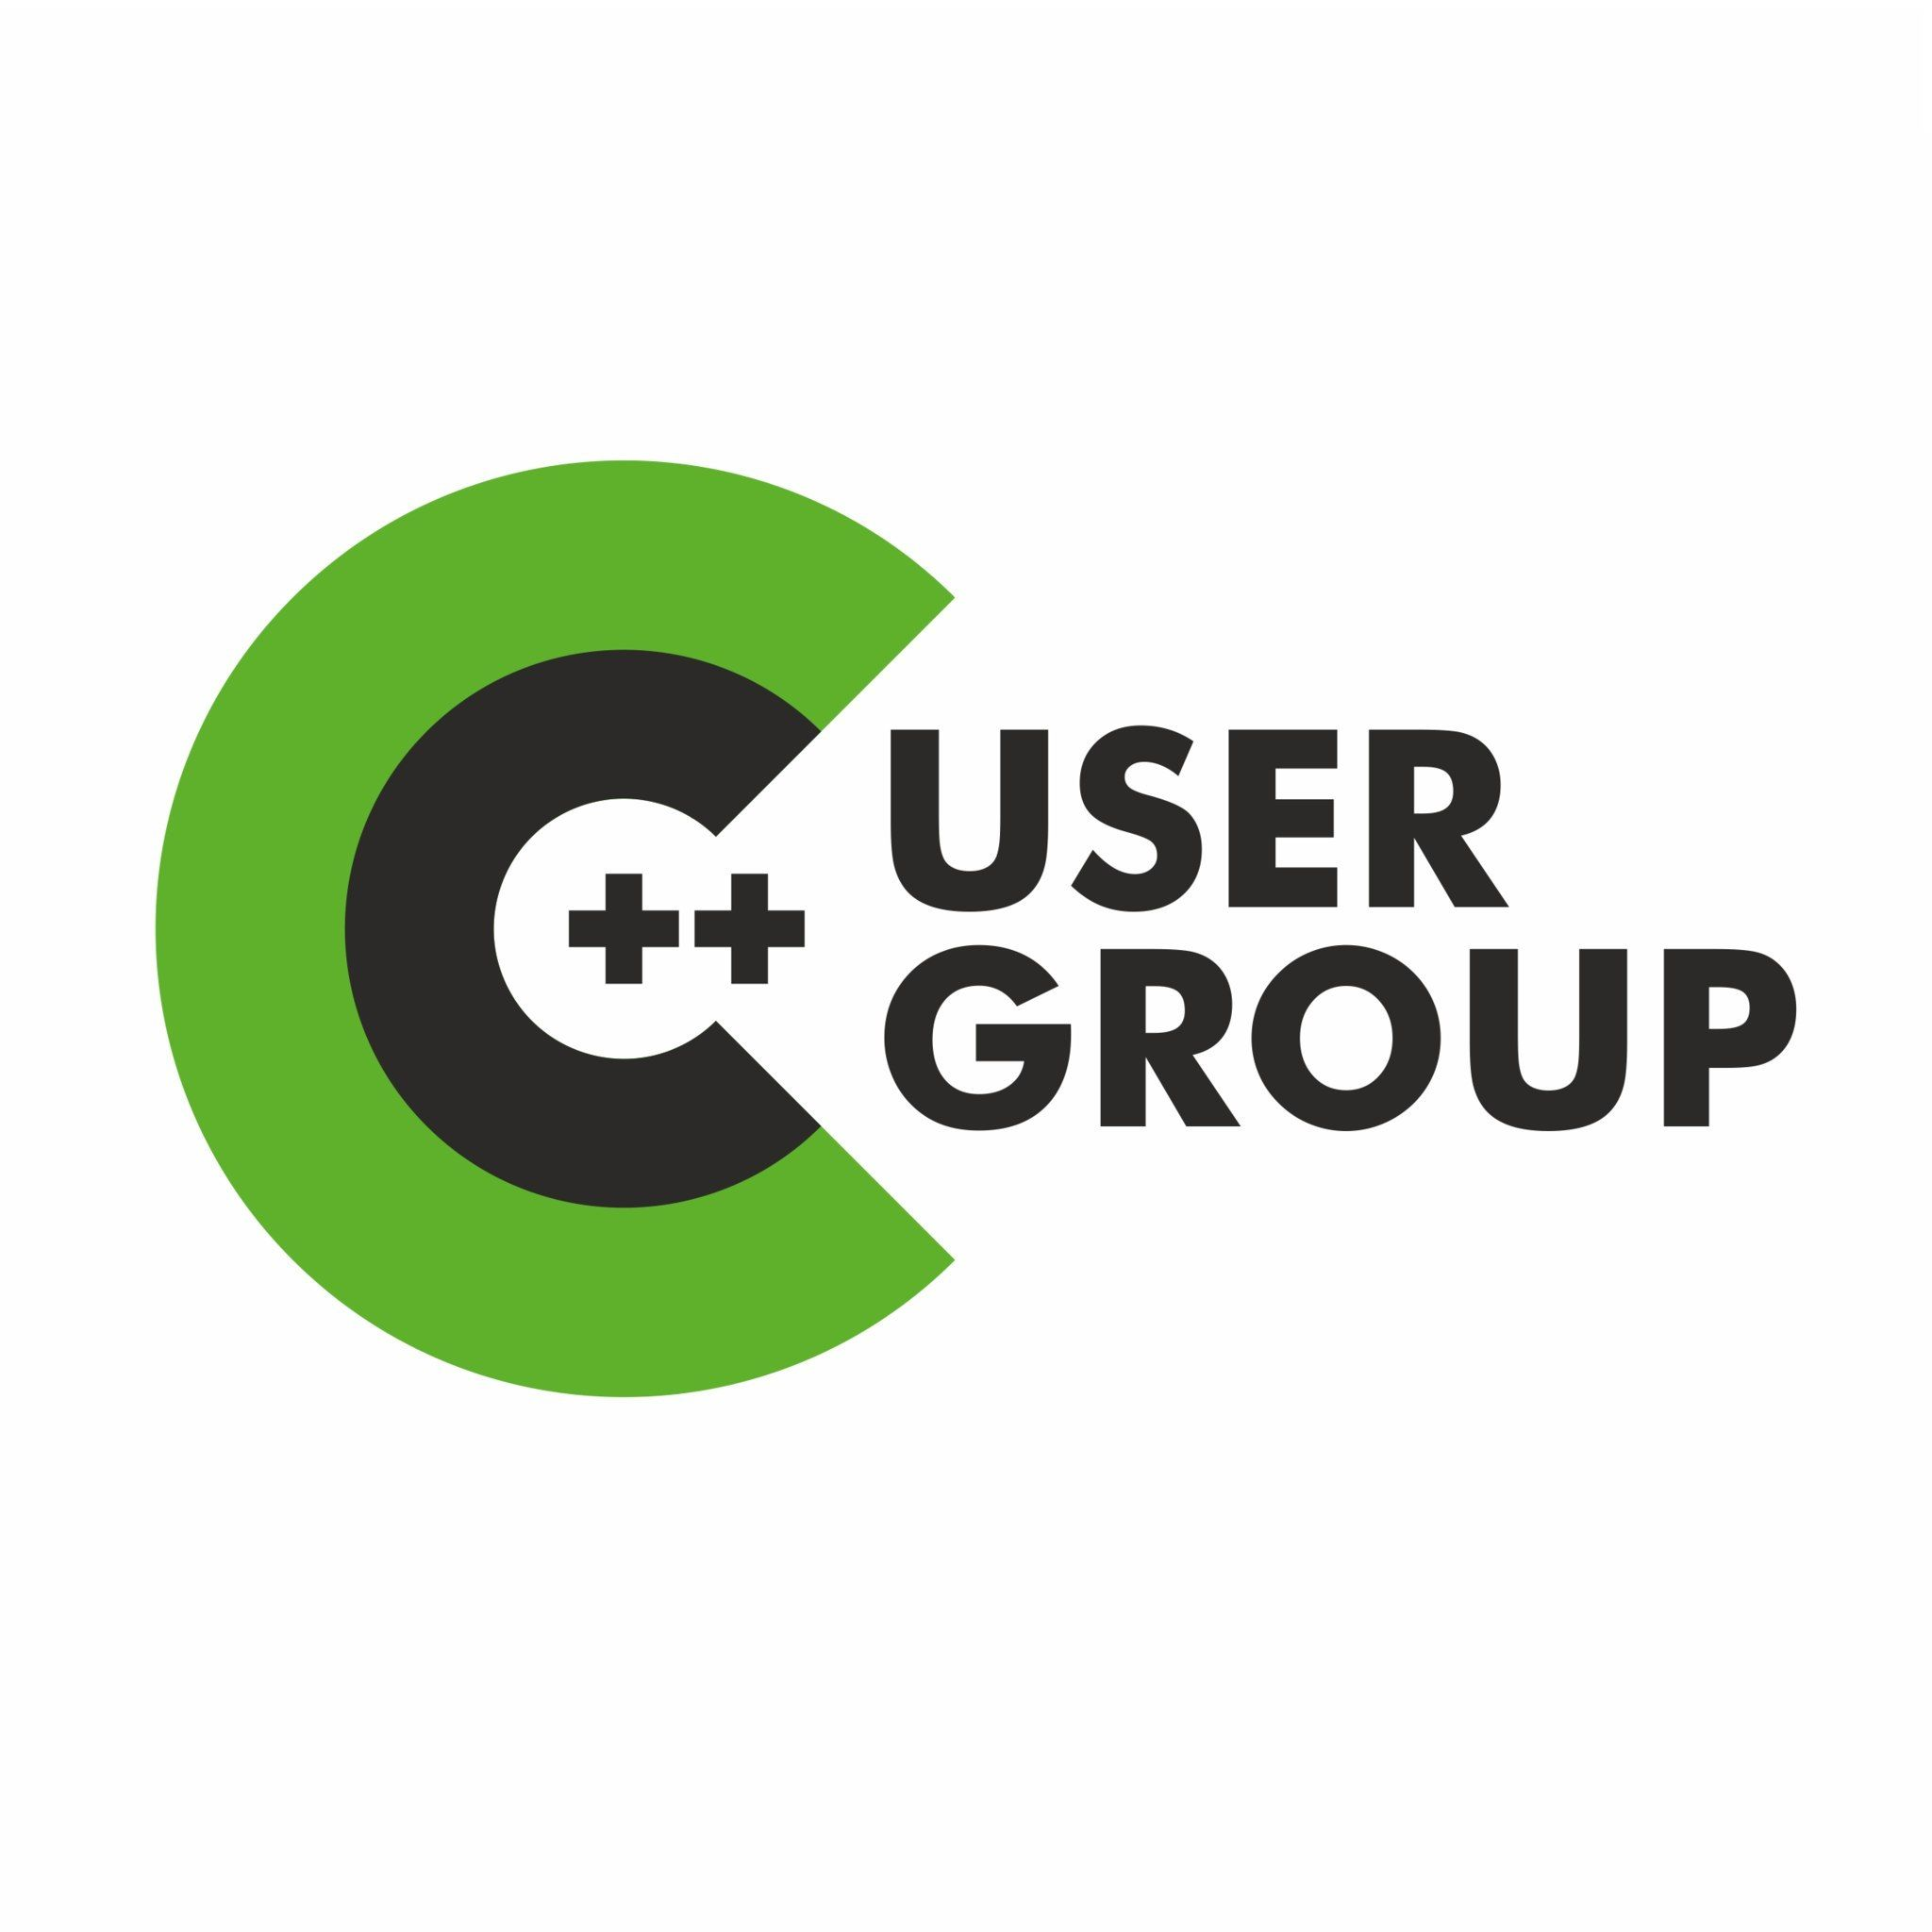 C++ User Group